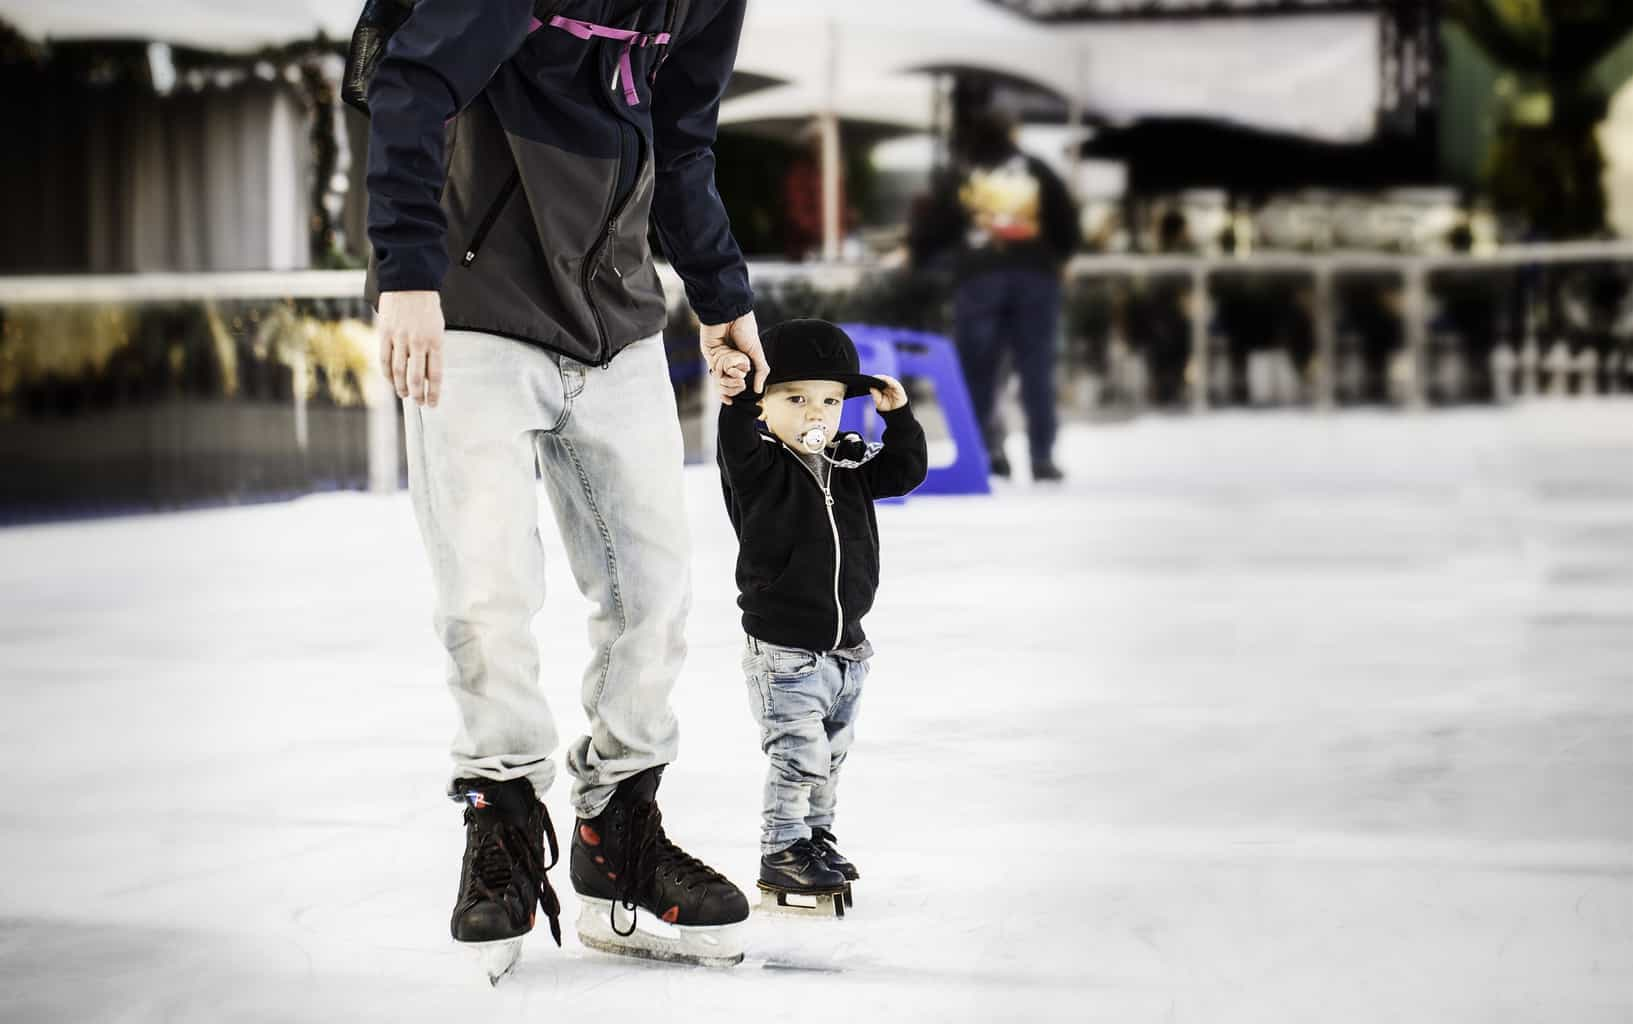 Where you can find snow in Southern California? At Winter Fest OC 2019 blowing into the OC Fair & Event Center in Costa Mesa on December 19 through January 5. Winter Fest embodies the spirit of the winter season, bringing fun and merriment to sunny Southern California.